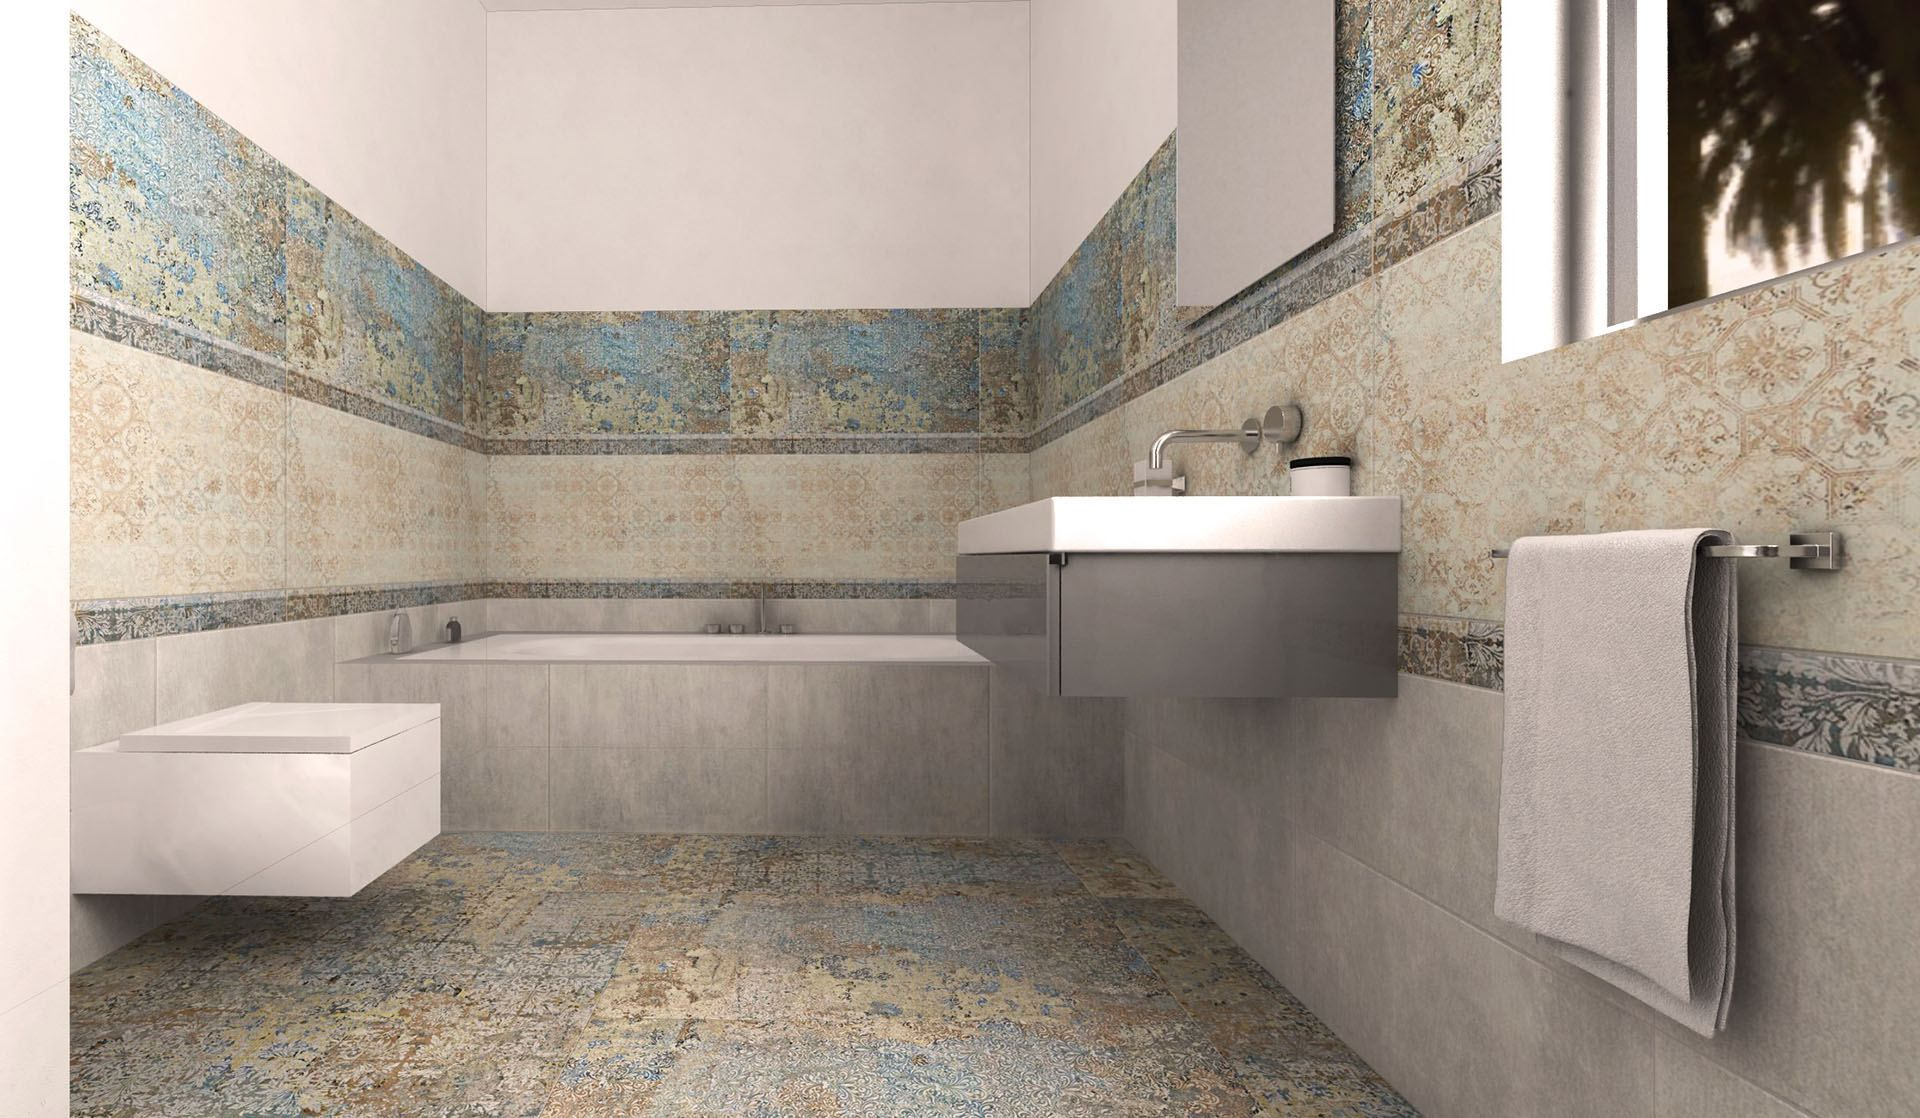 3 Zimmer Küche Bad Online Stream Bagno Con Aparici Carpet Vestige Bodenbelag In 2019 Bathroom